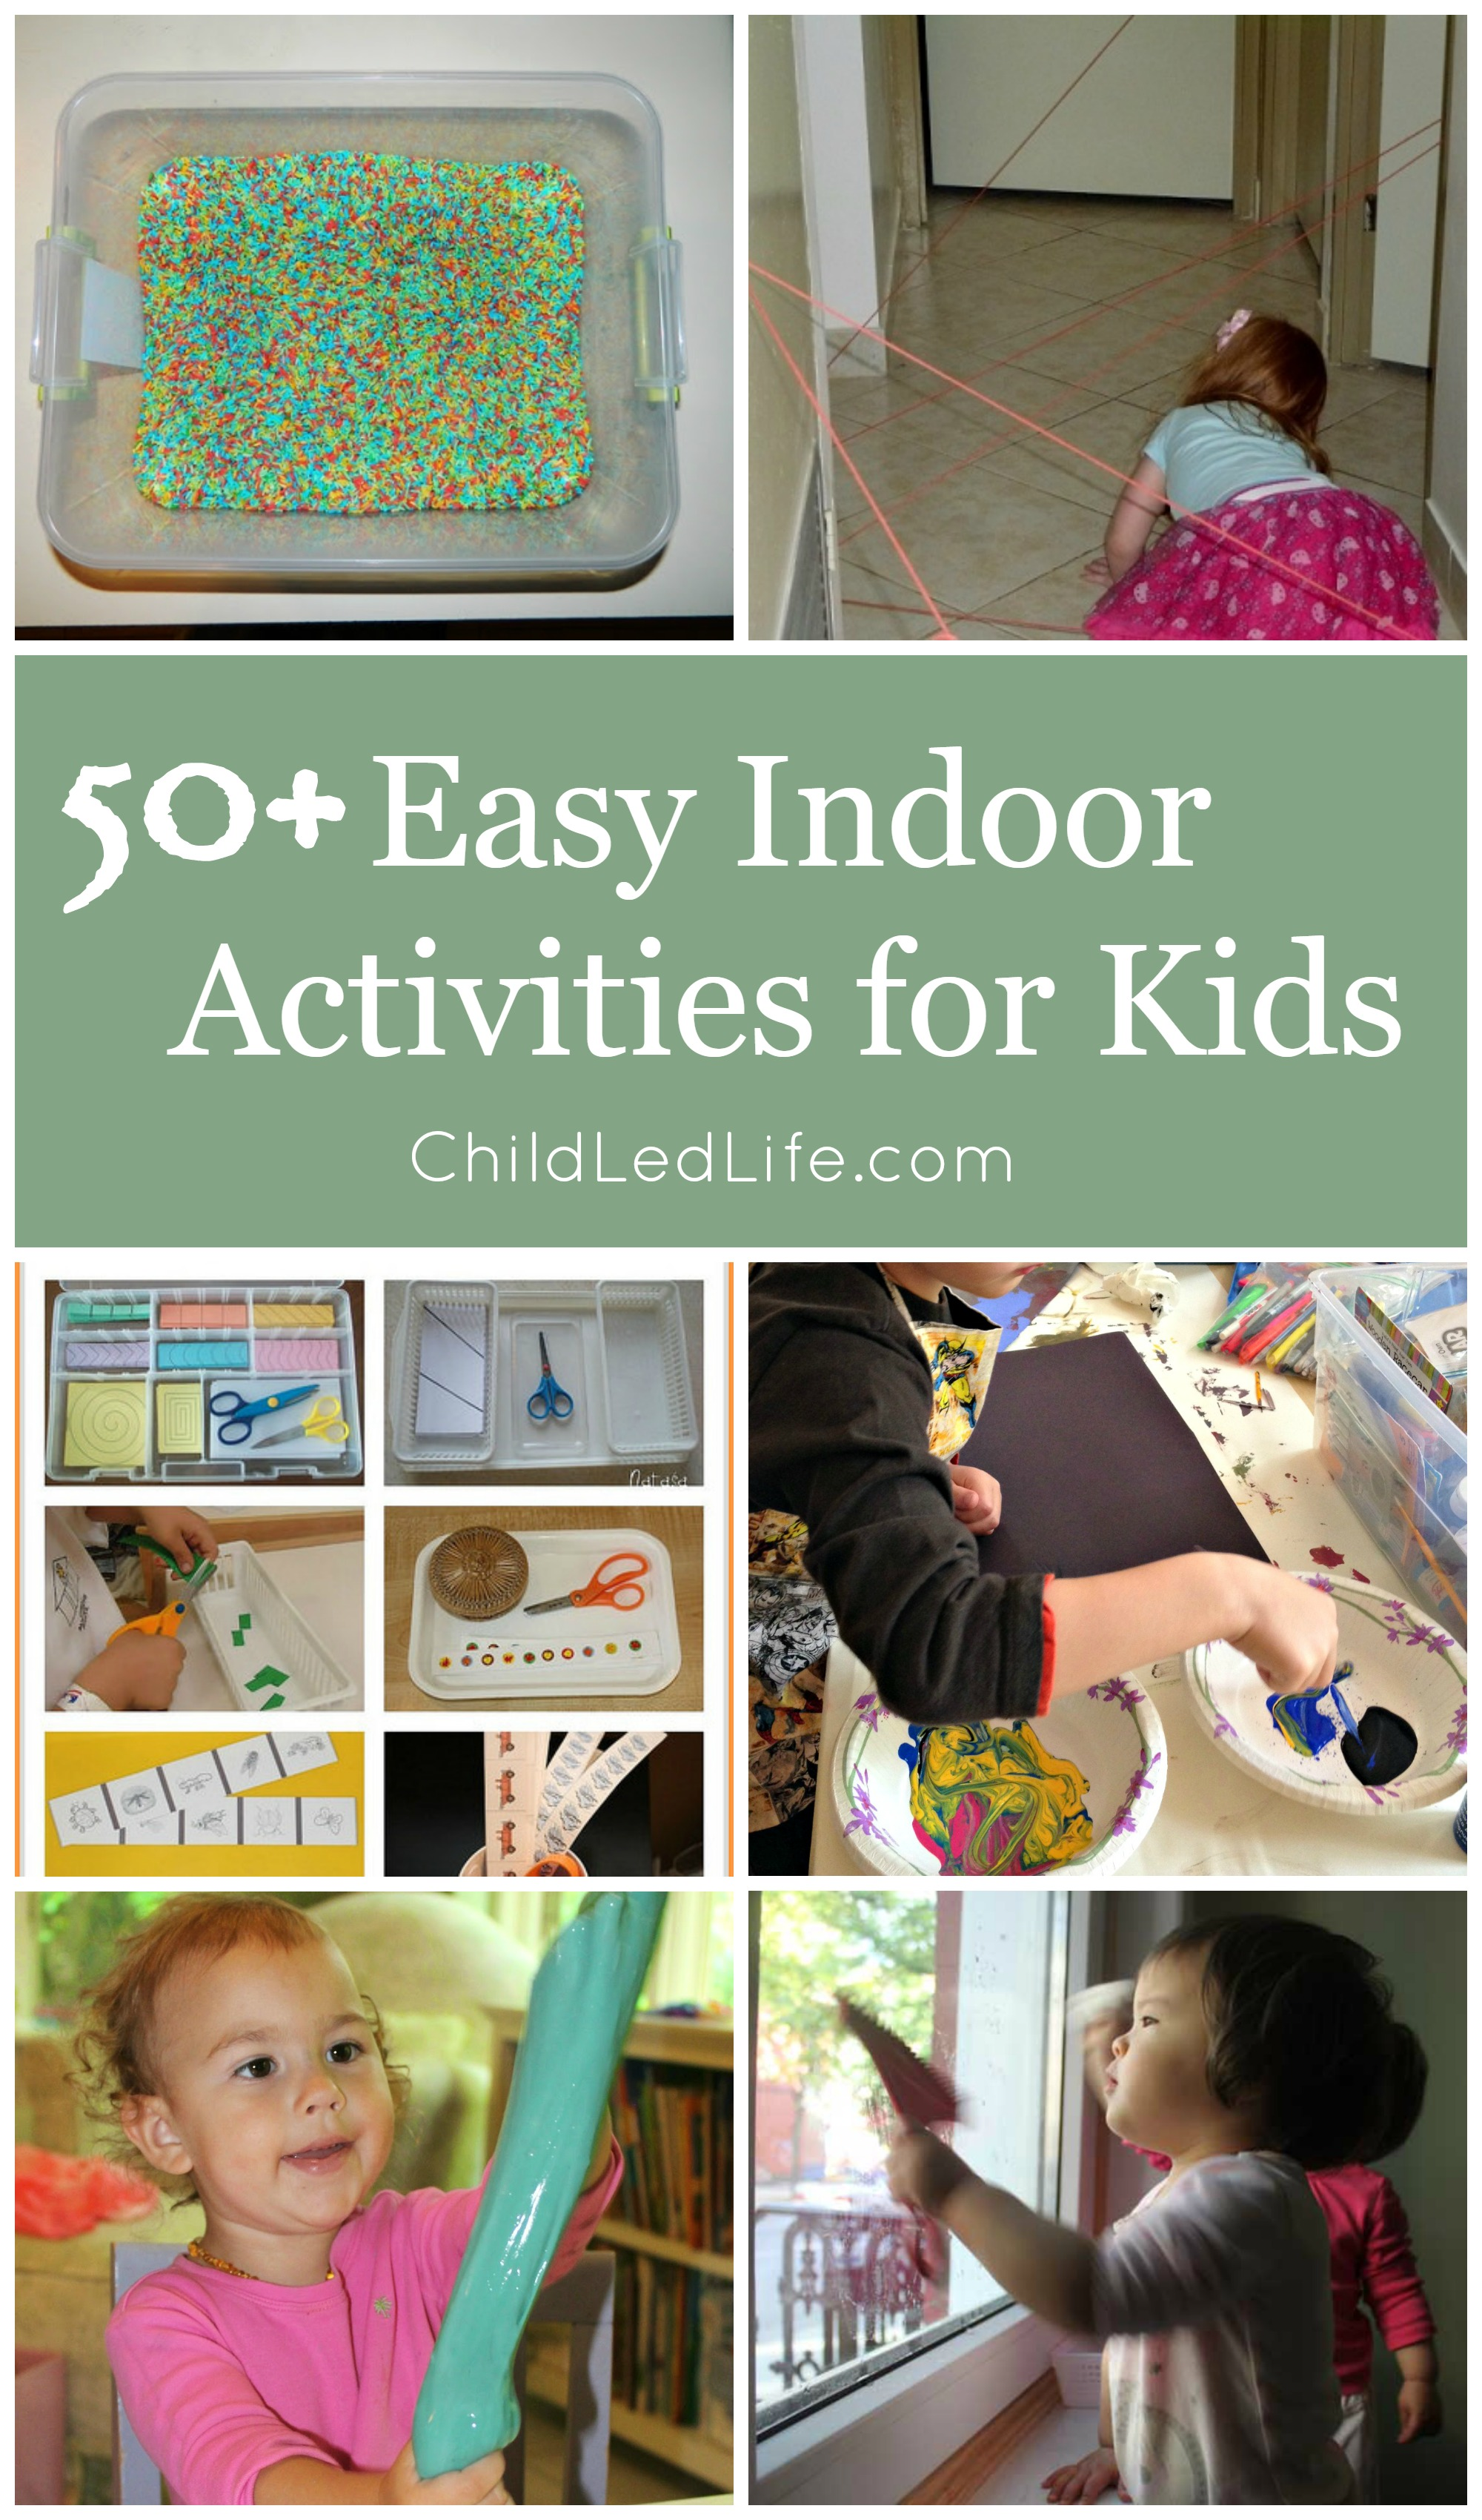 75 Easy & Fun Indoor Activities & Games for Kids at Home